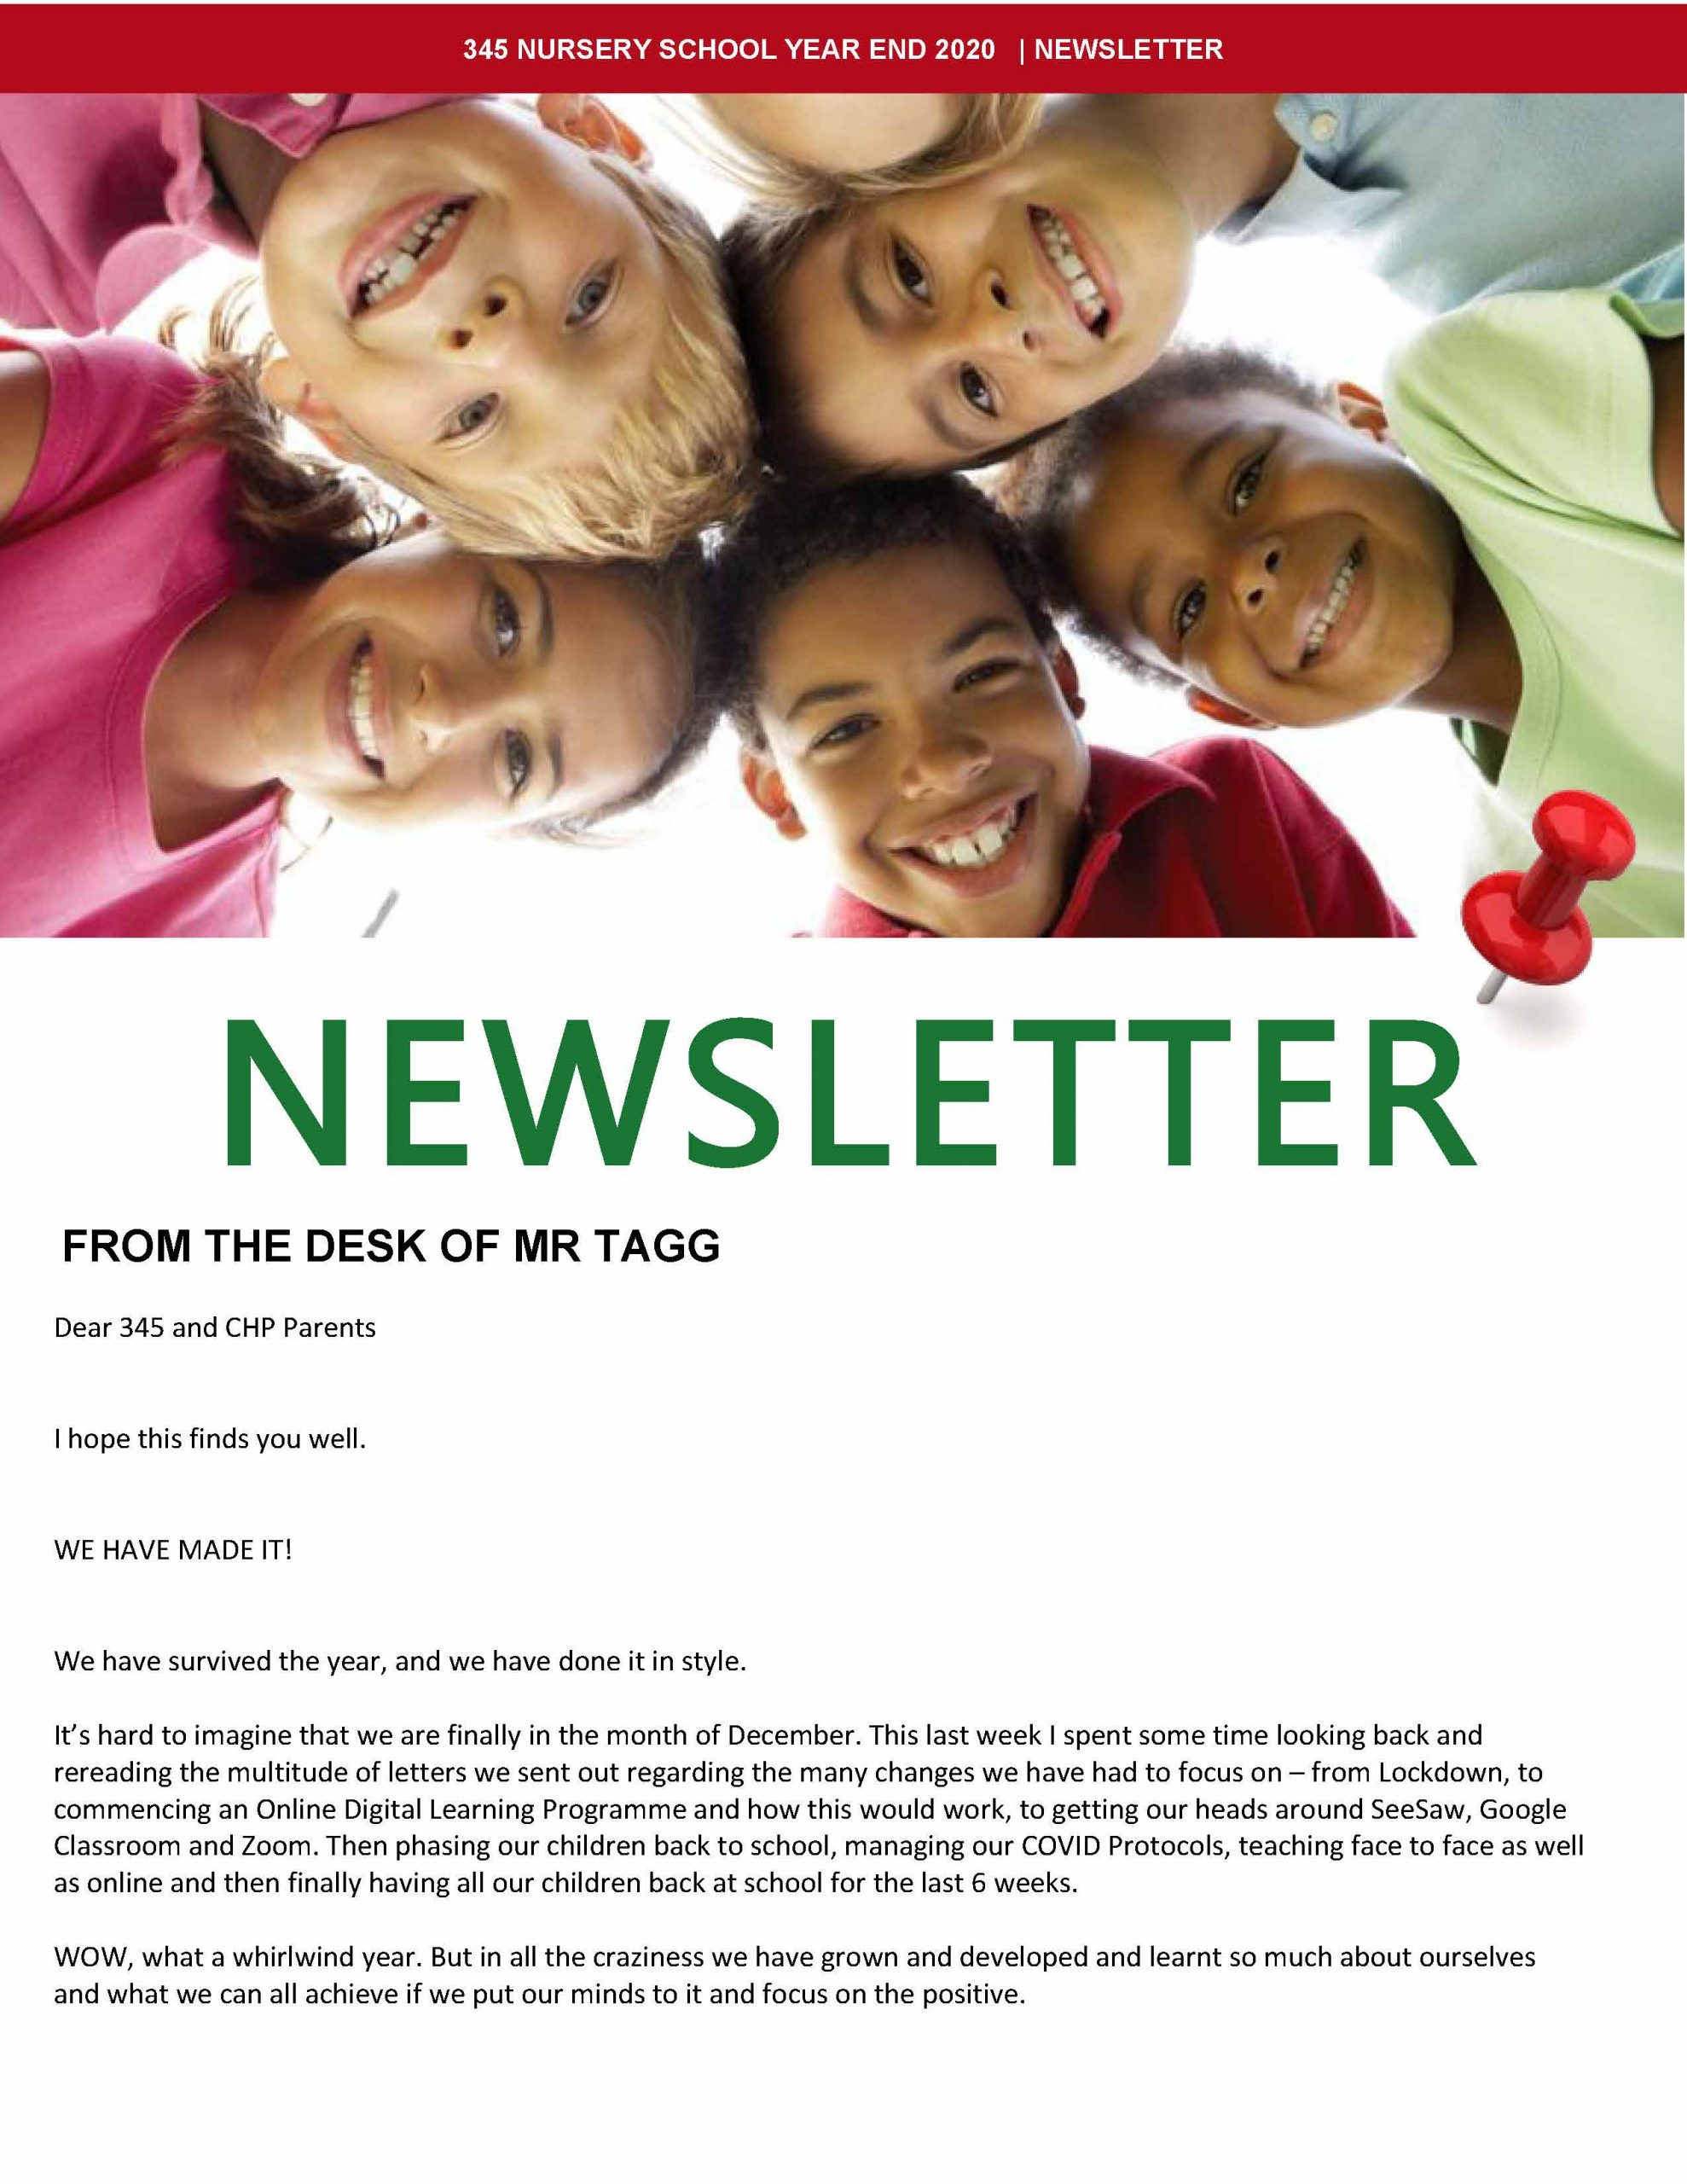 345 Year End Newsletter